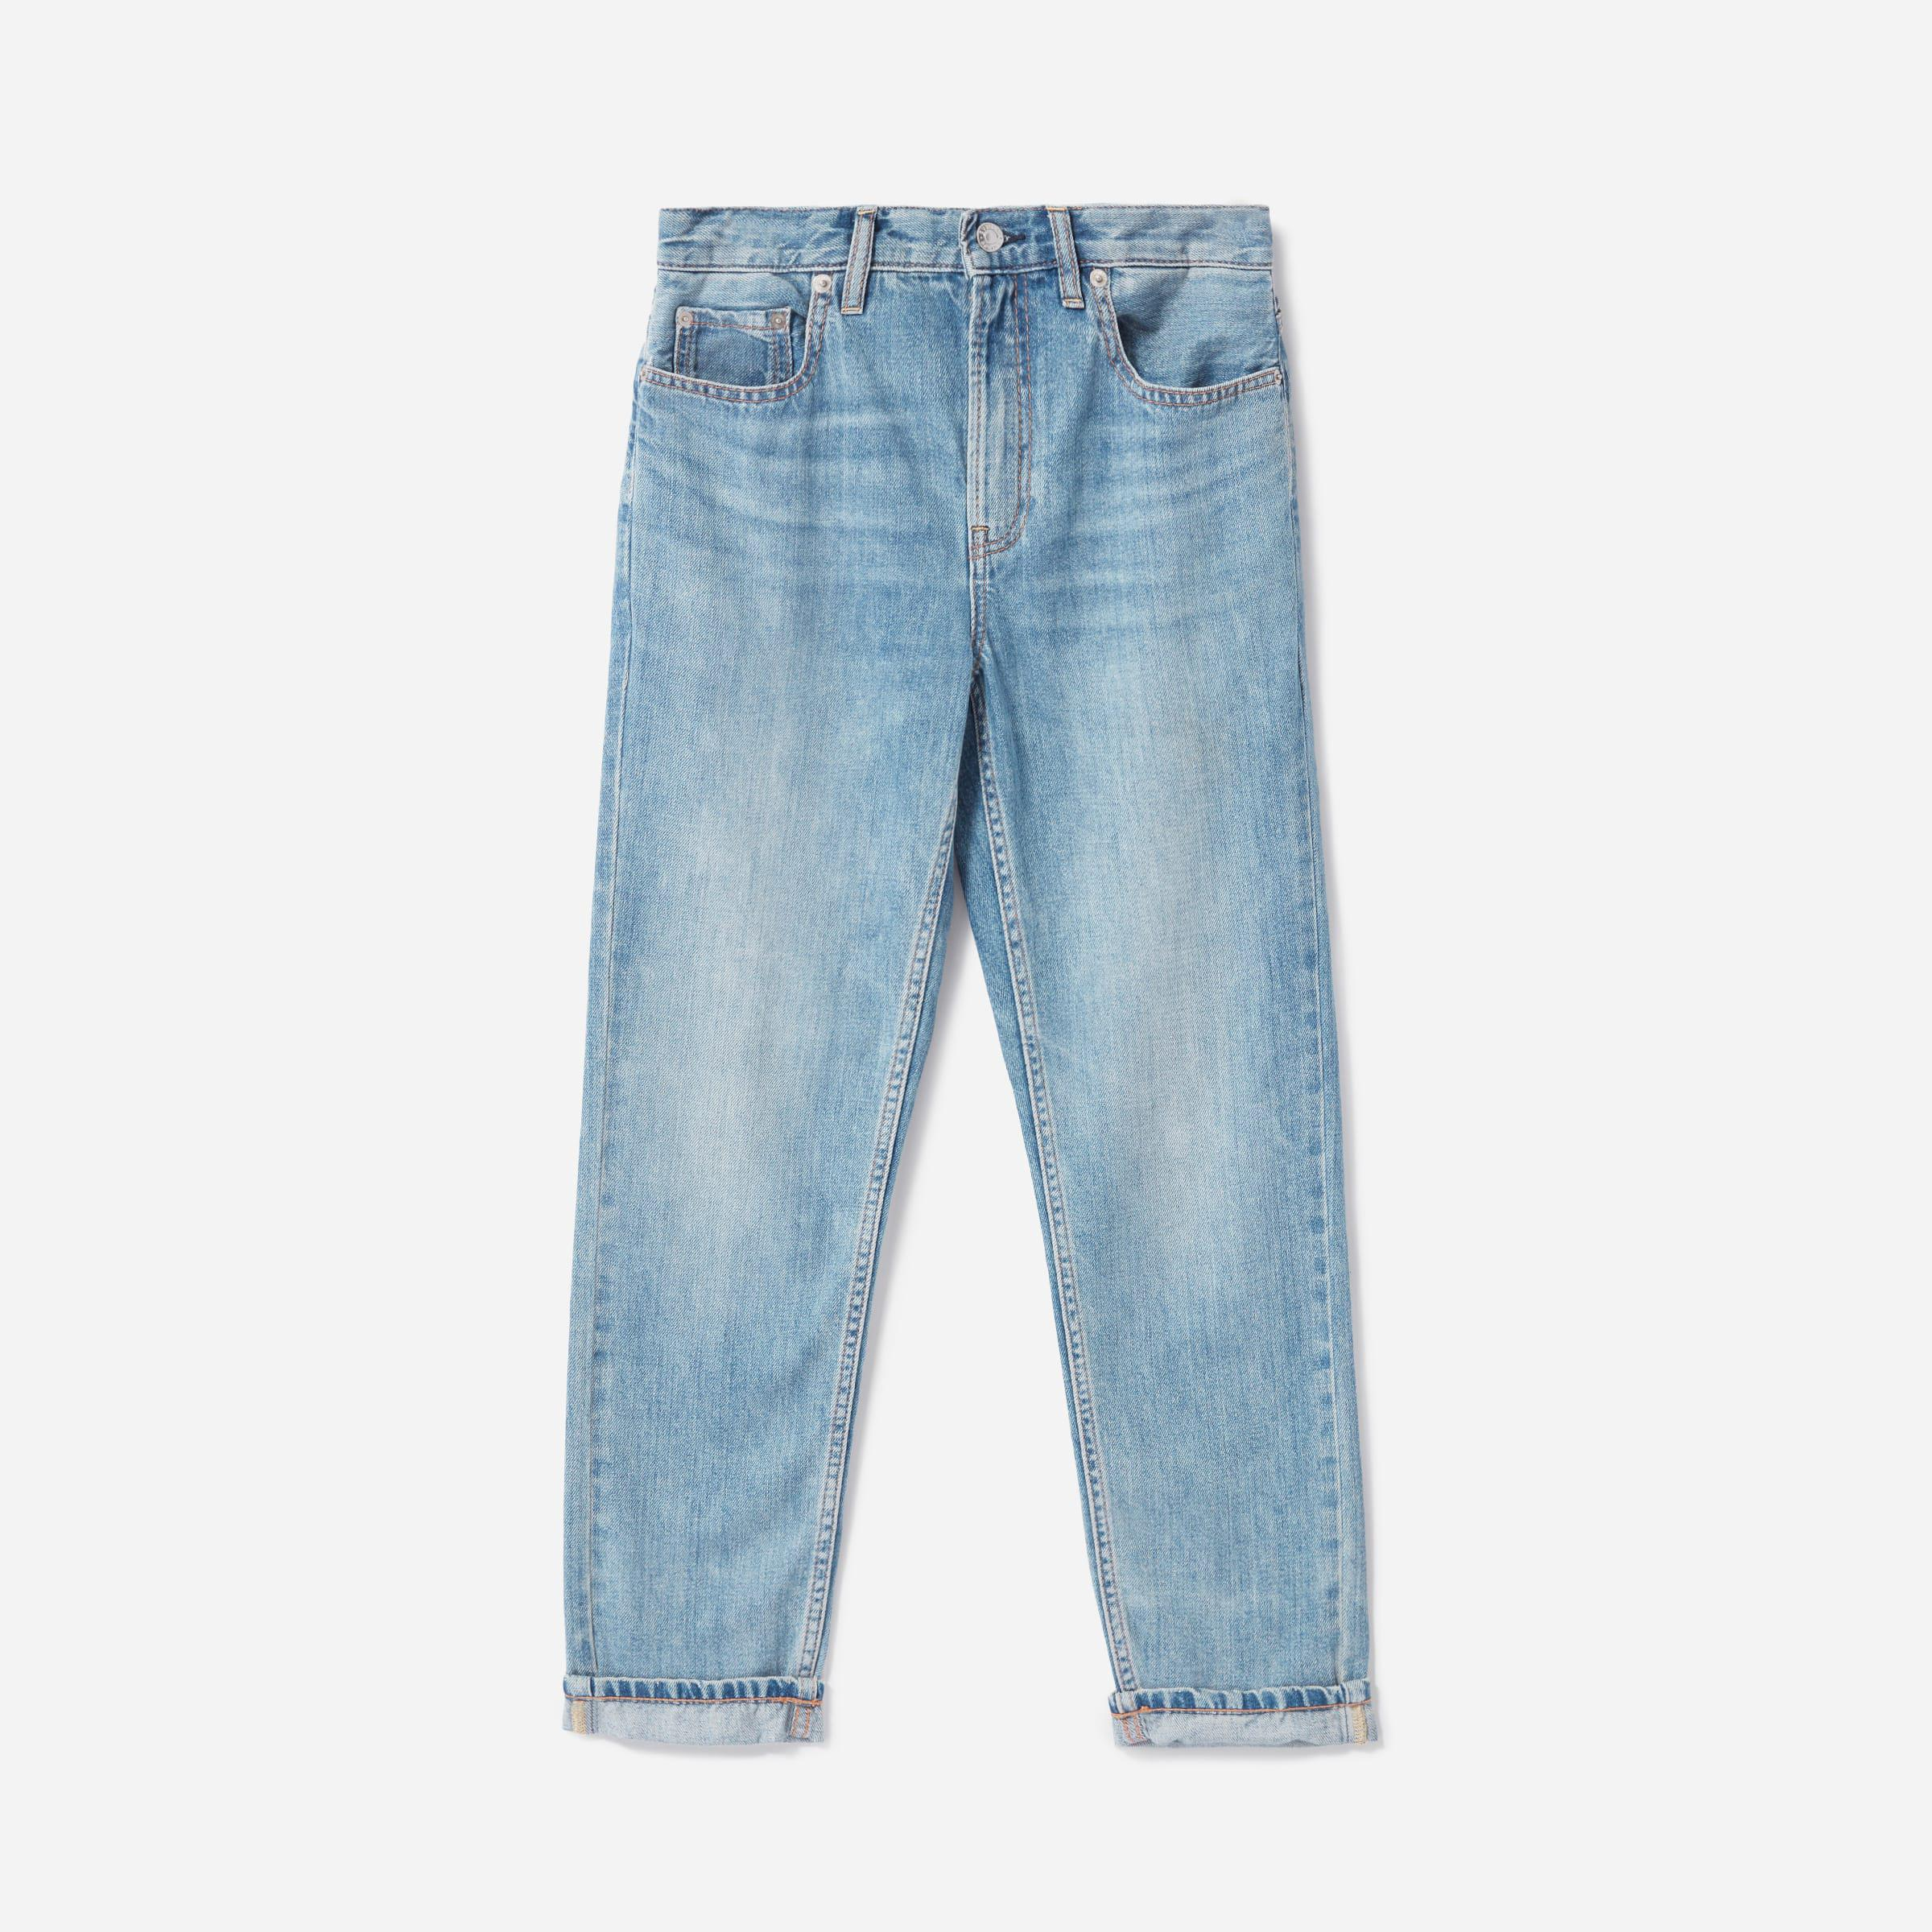 The Super-Soft Relaxed Jean 6